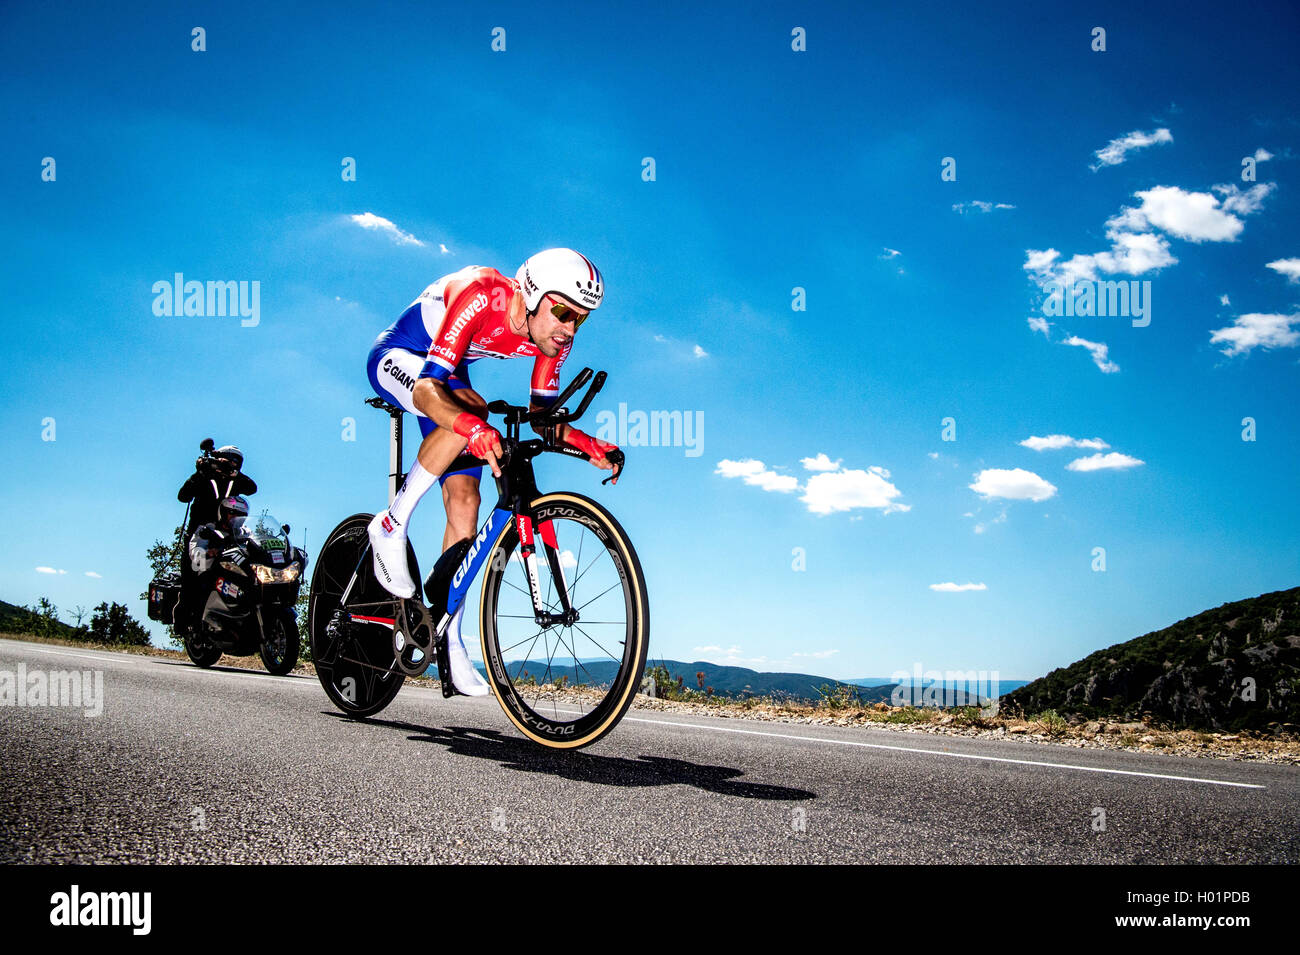 Tour de France 2016 Étape 13 Tom Dumoulin (NED) Bourg-Saint-Andeol à La Carerne du Pont-d'Arc 37.5km Photo Stock